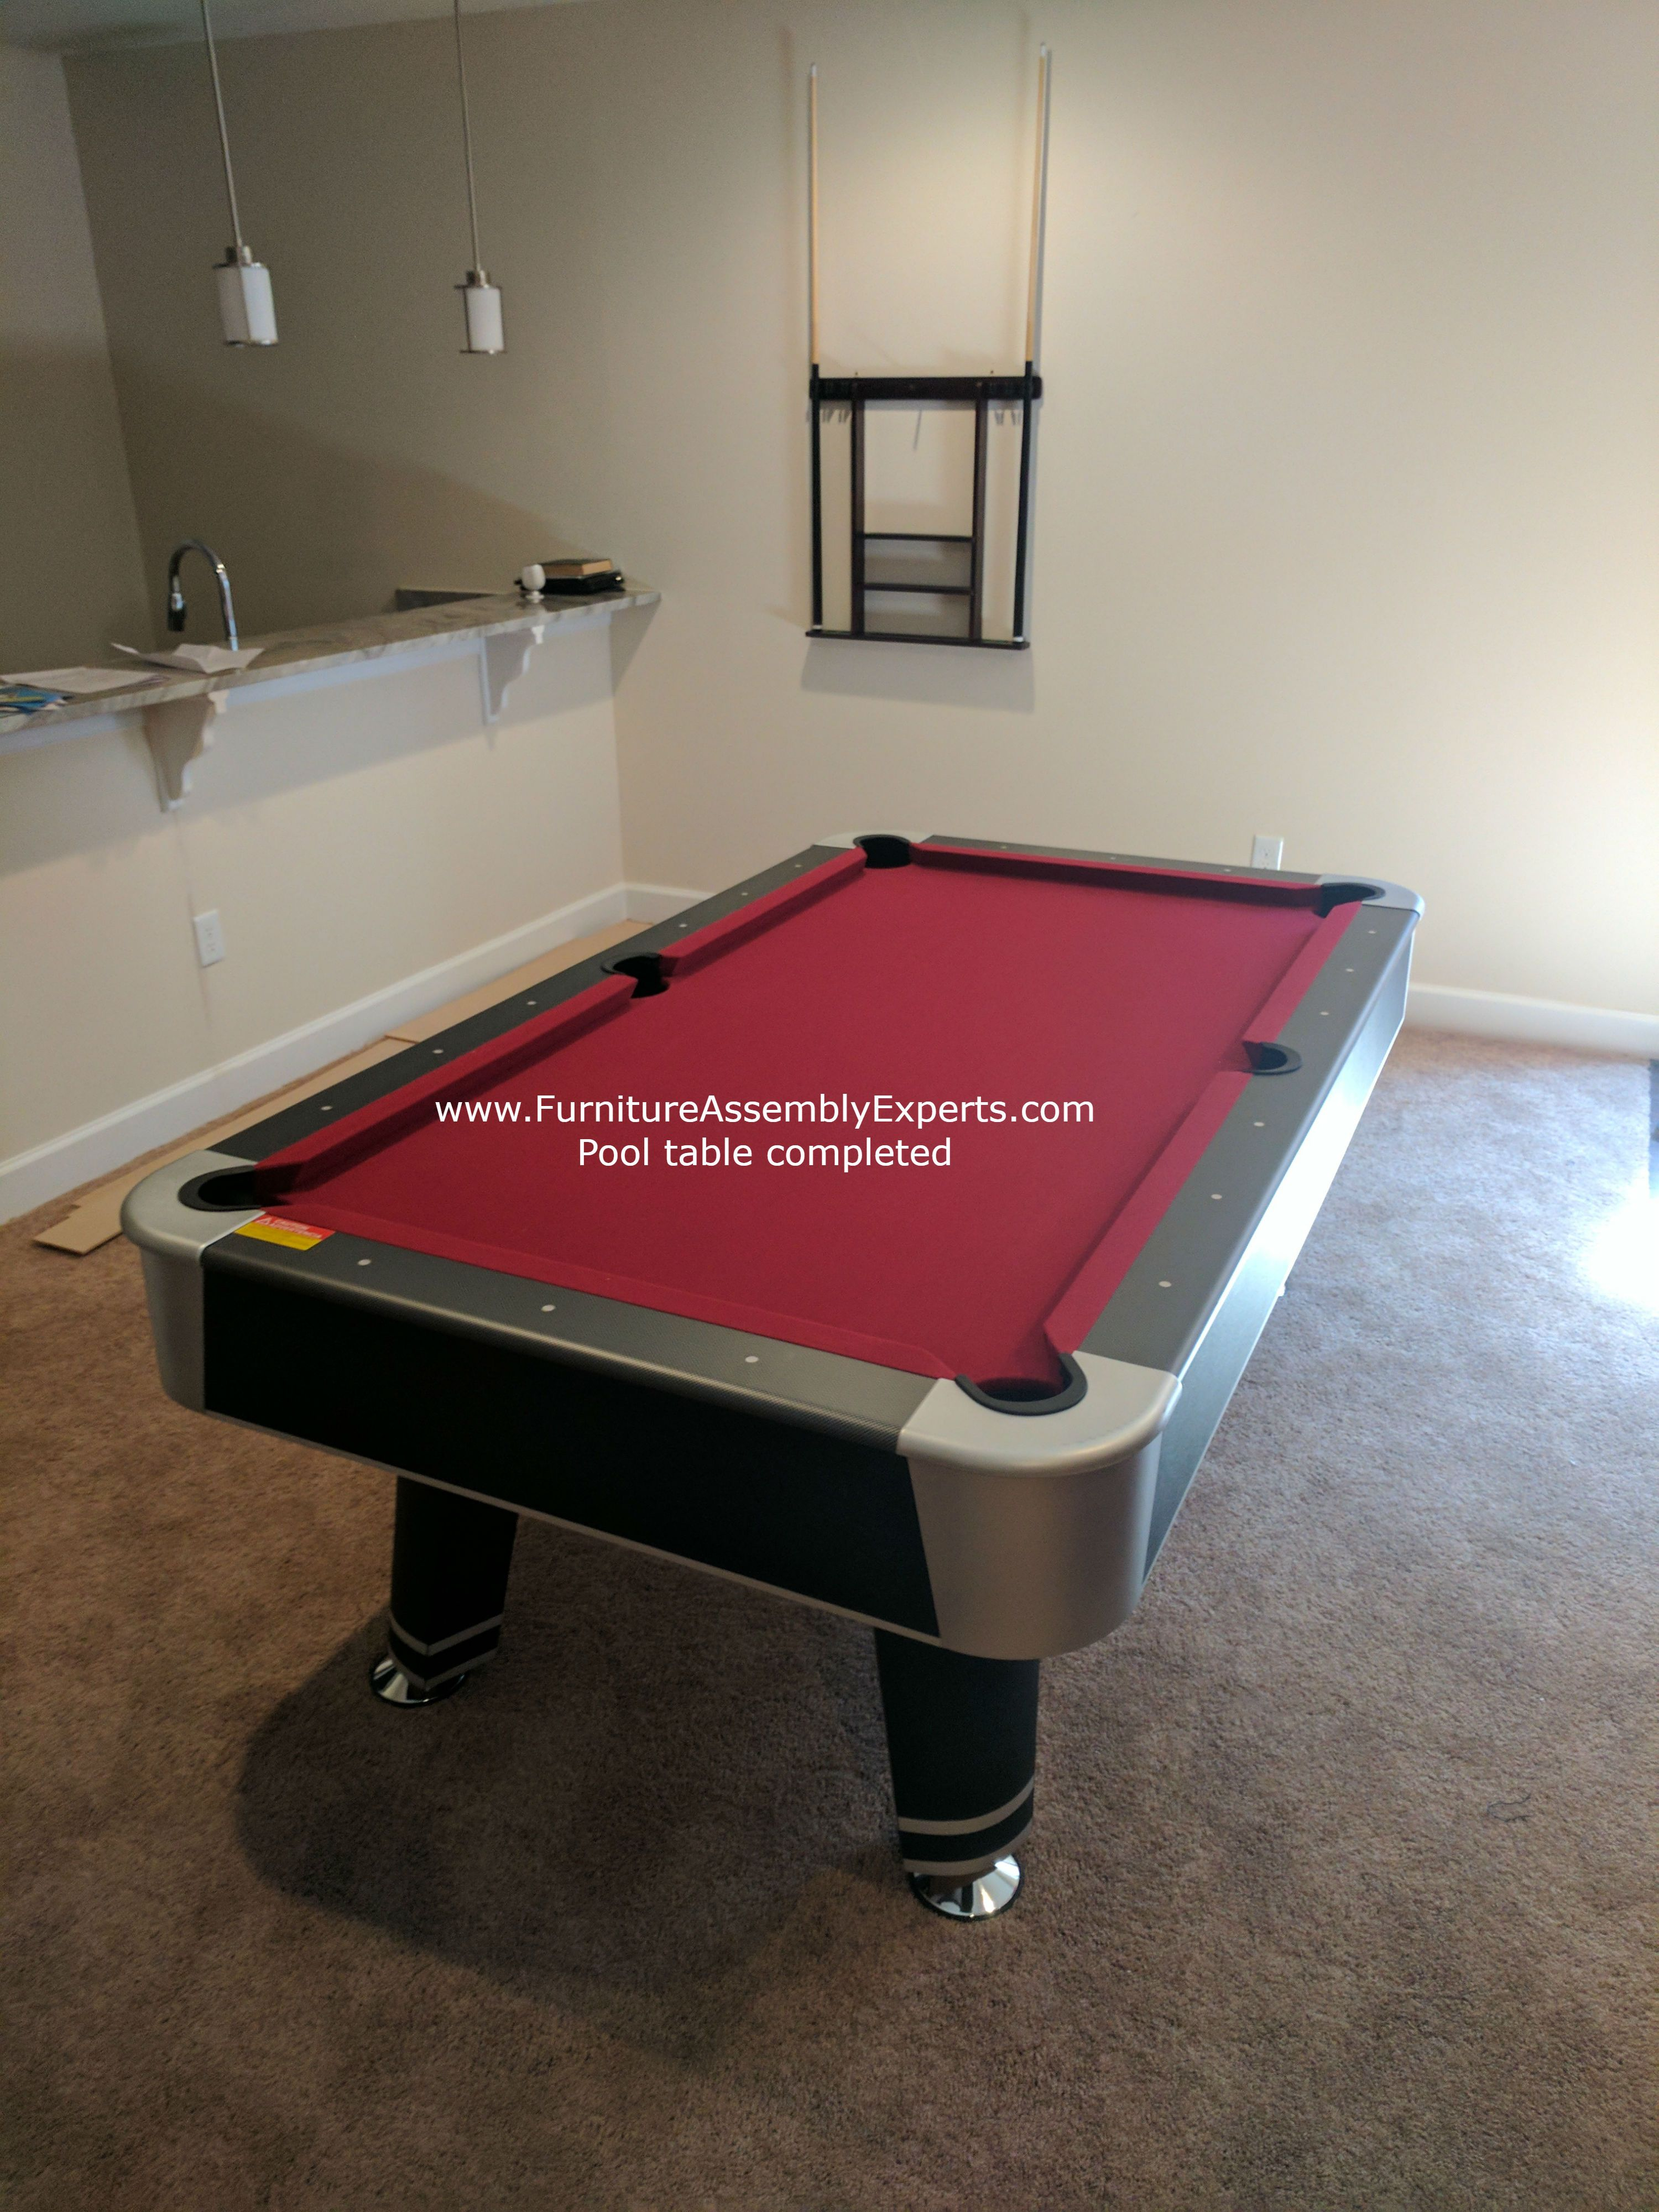 Billiard Pool Table Assembly And Installation Specialist In Washington DC    Maryland   Virginia   Delaware